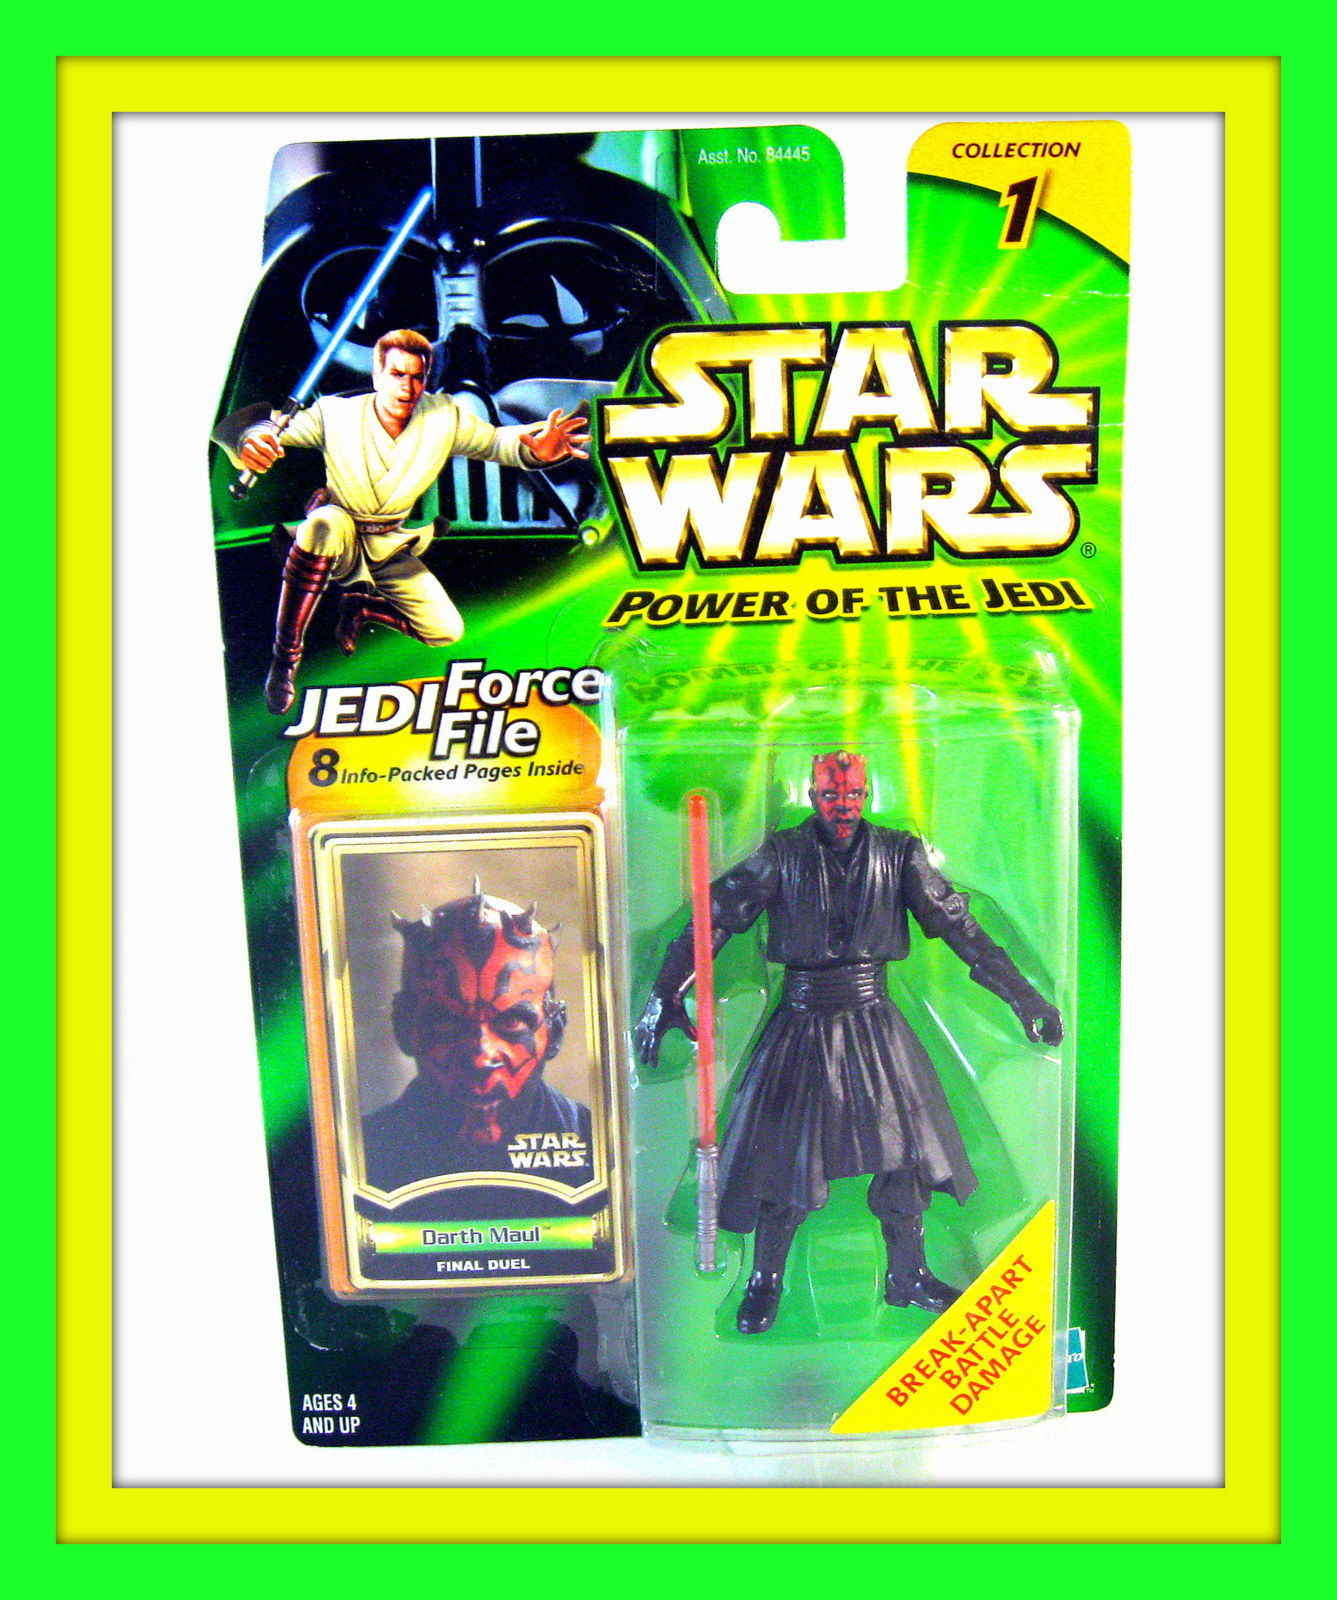 STAR WARS CARDED DARTH MAUL(FINAL DUEL)WITH JEDI FORCE FILE,COLLECTOR'S ITEM,NEW